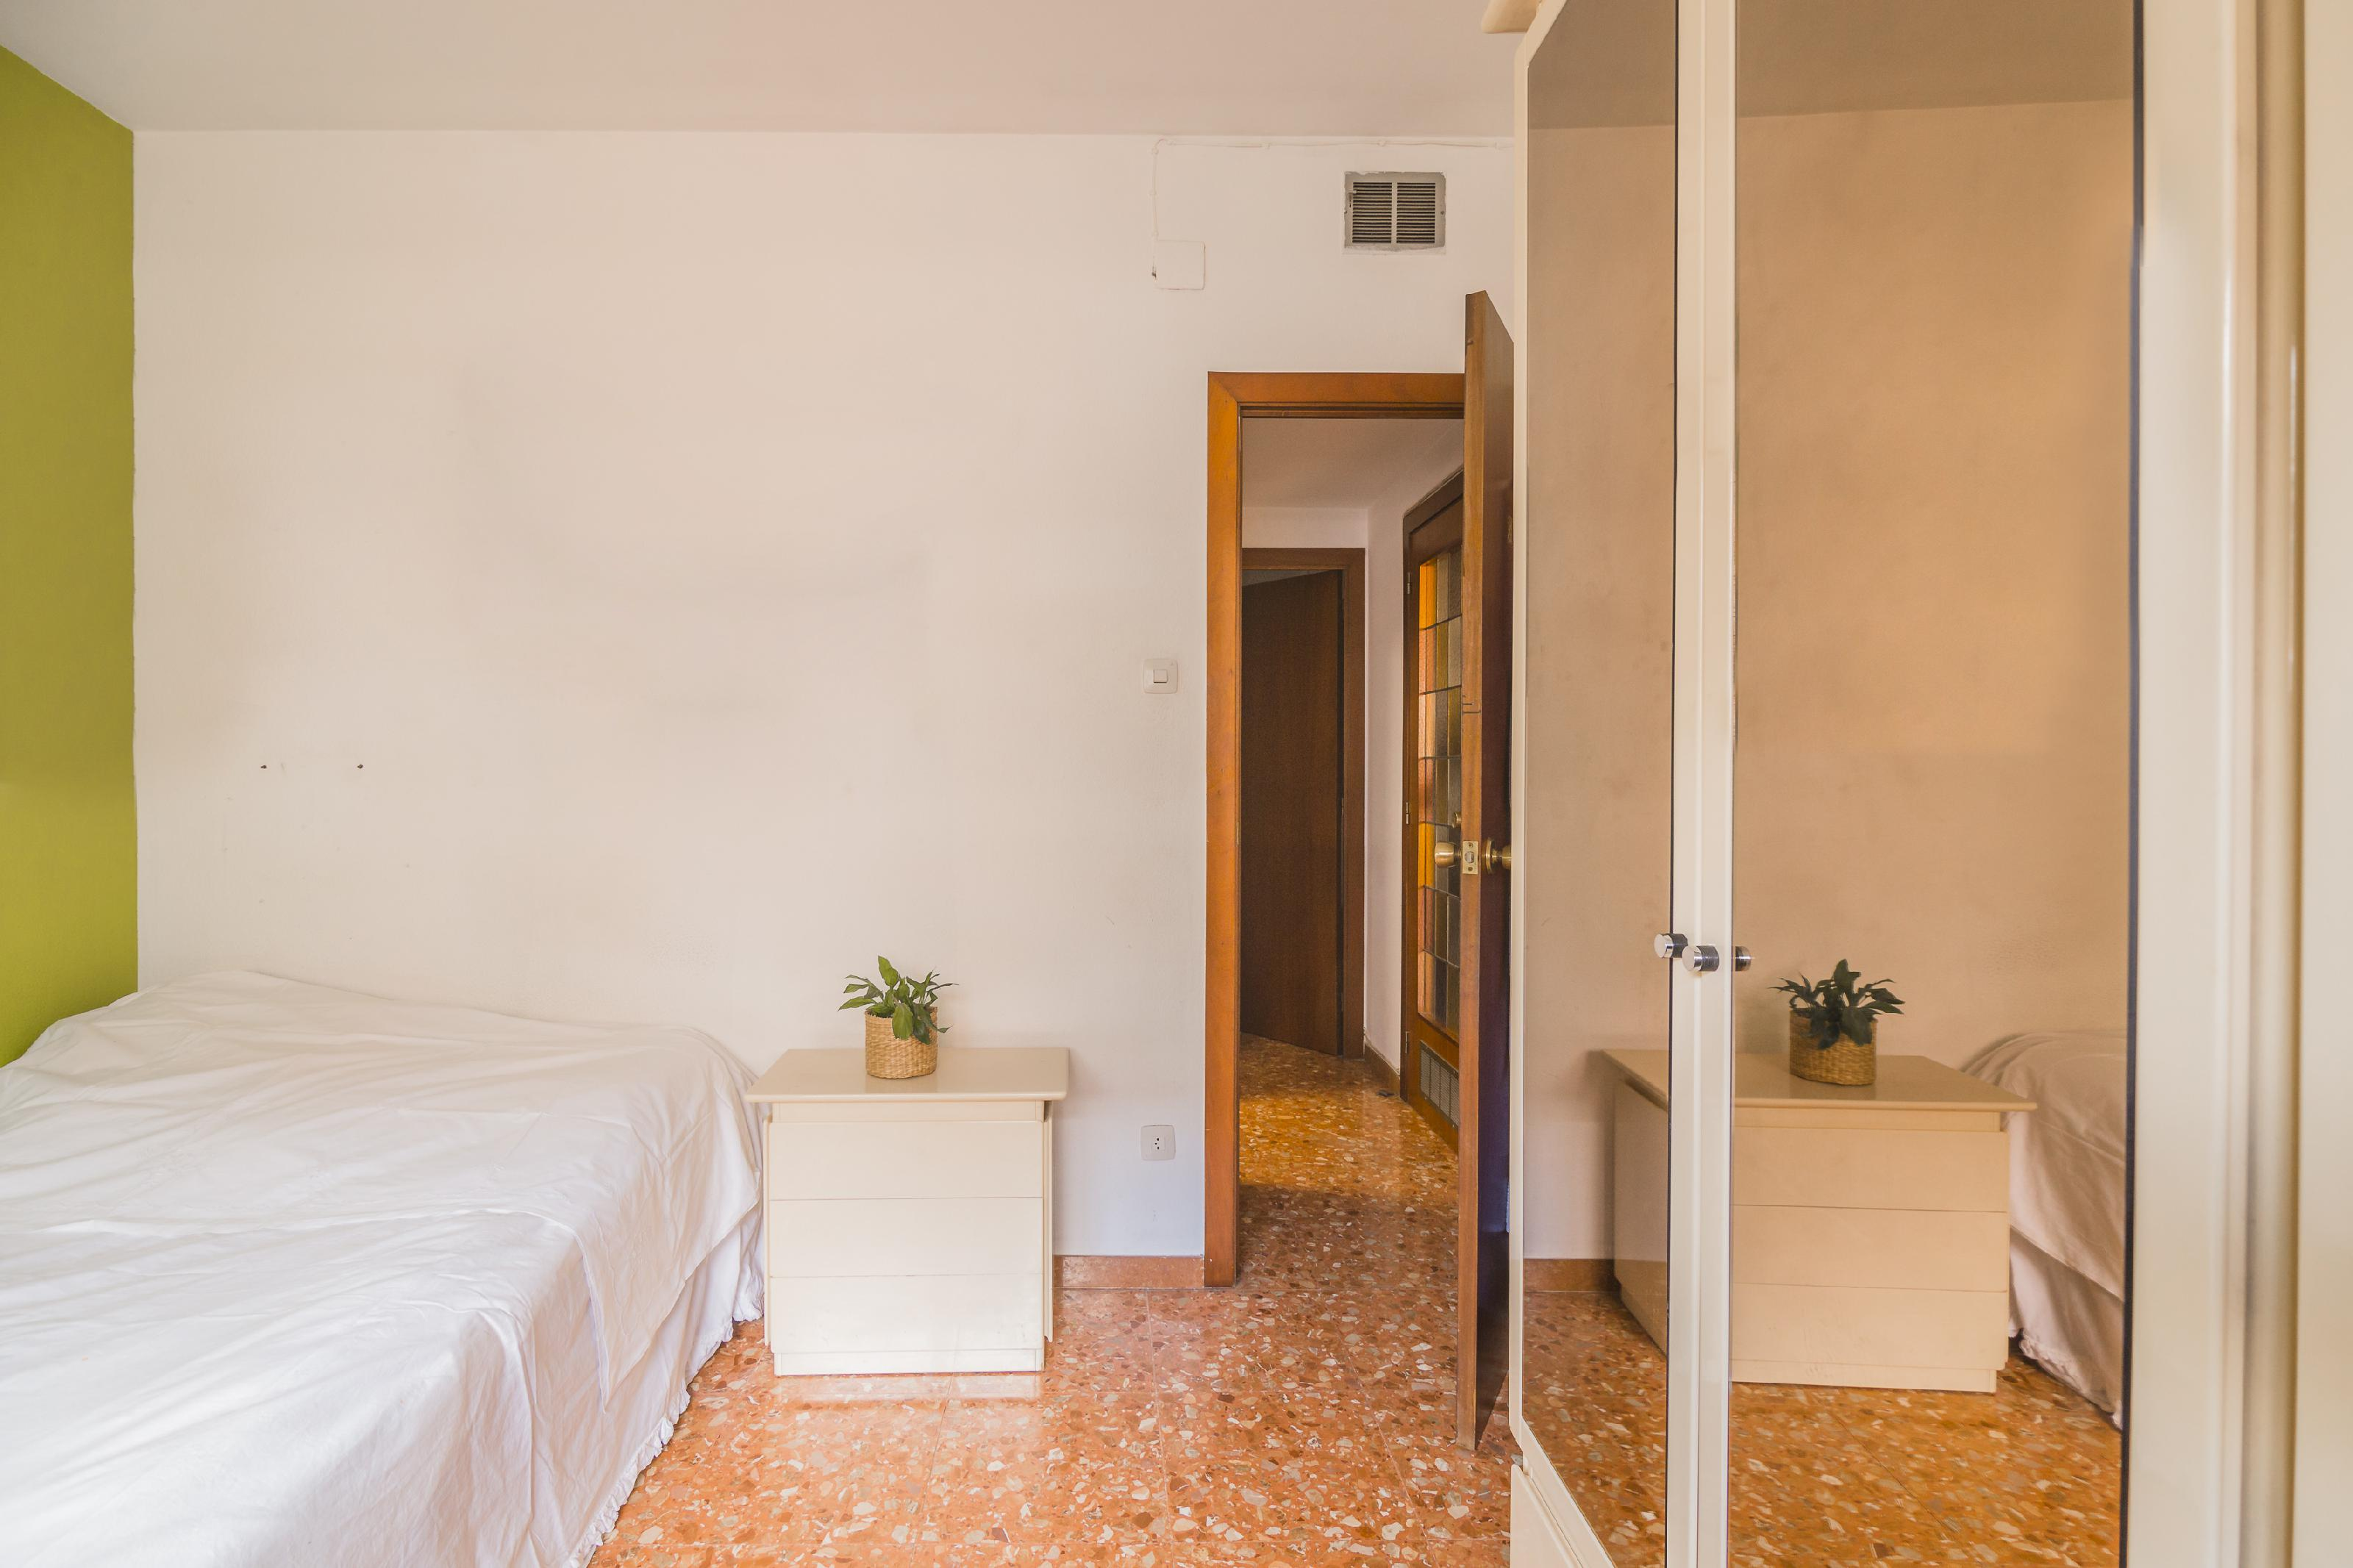 239426 Flat for sale in Les Corts, Les Corts 6